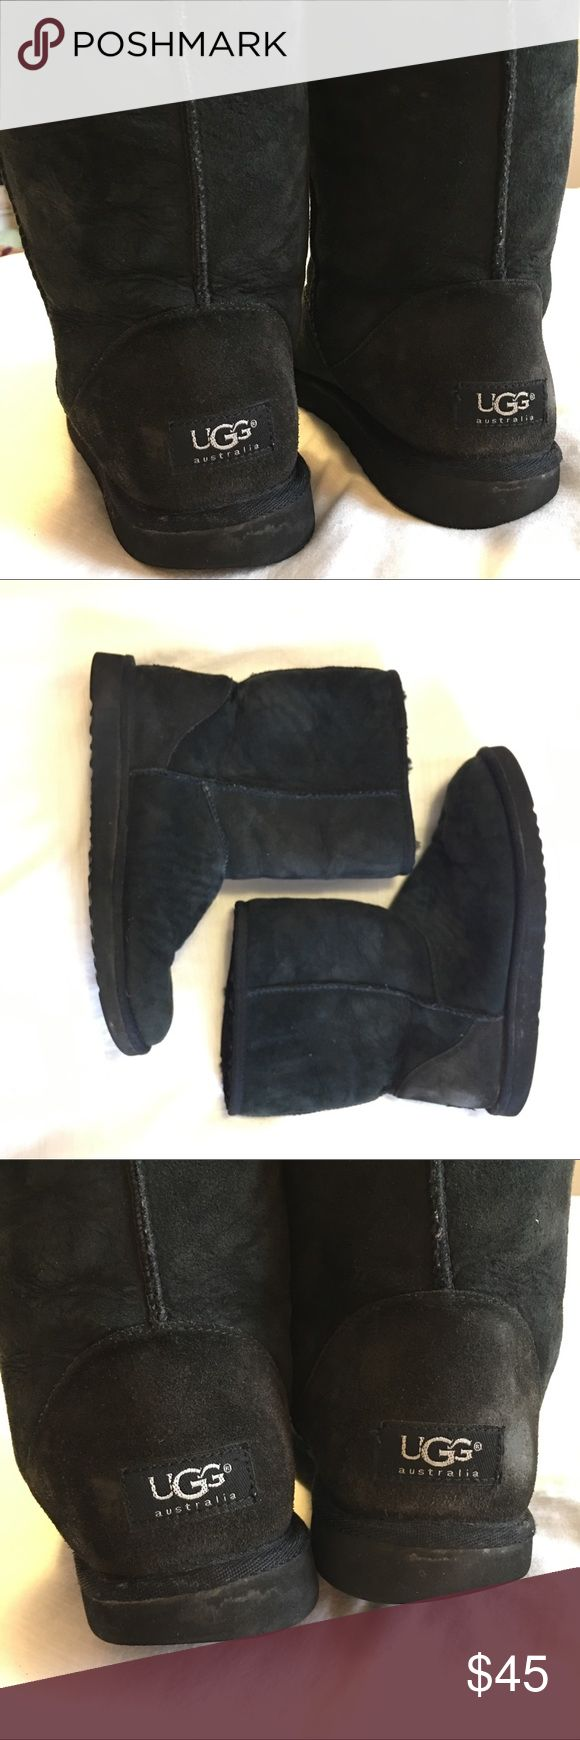 Black Ugg Boots Short black uggs. They do show some signs of wear (i.e water marks) and could use a good cleaning. The soles show wear on the back outsides as pictured. Otherwise, they're in great condition.  Size women's 9. UGG Shoes Combat & Moto Boots